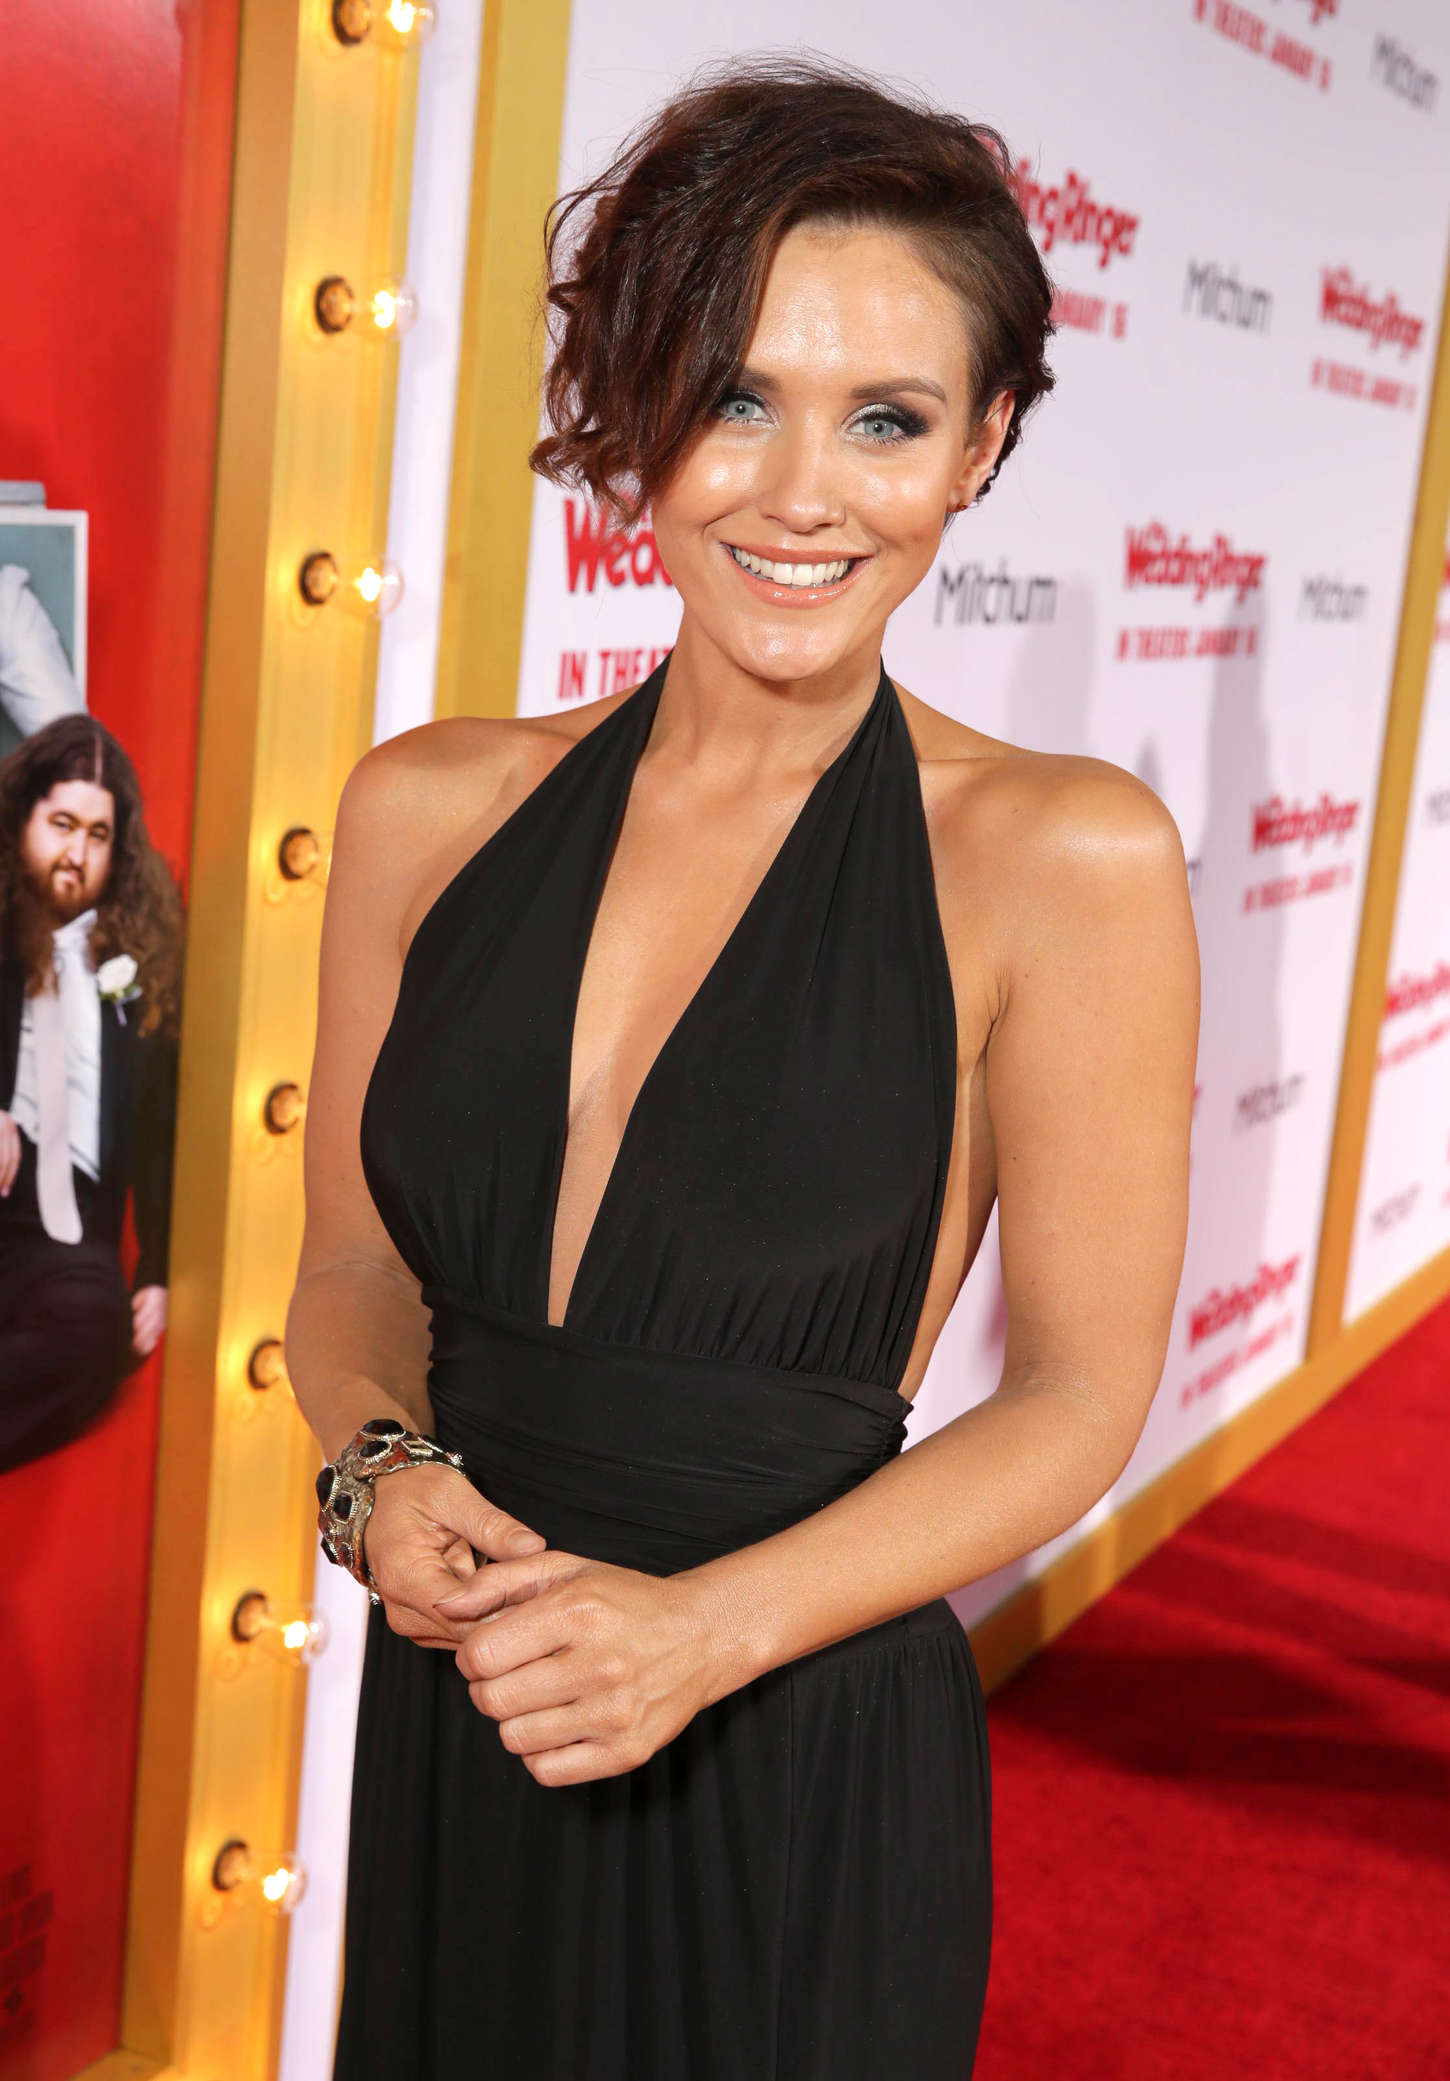 Nicky Whelan The Wedding Ringer Premiere in Hollywood